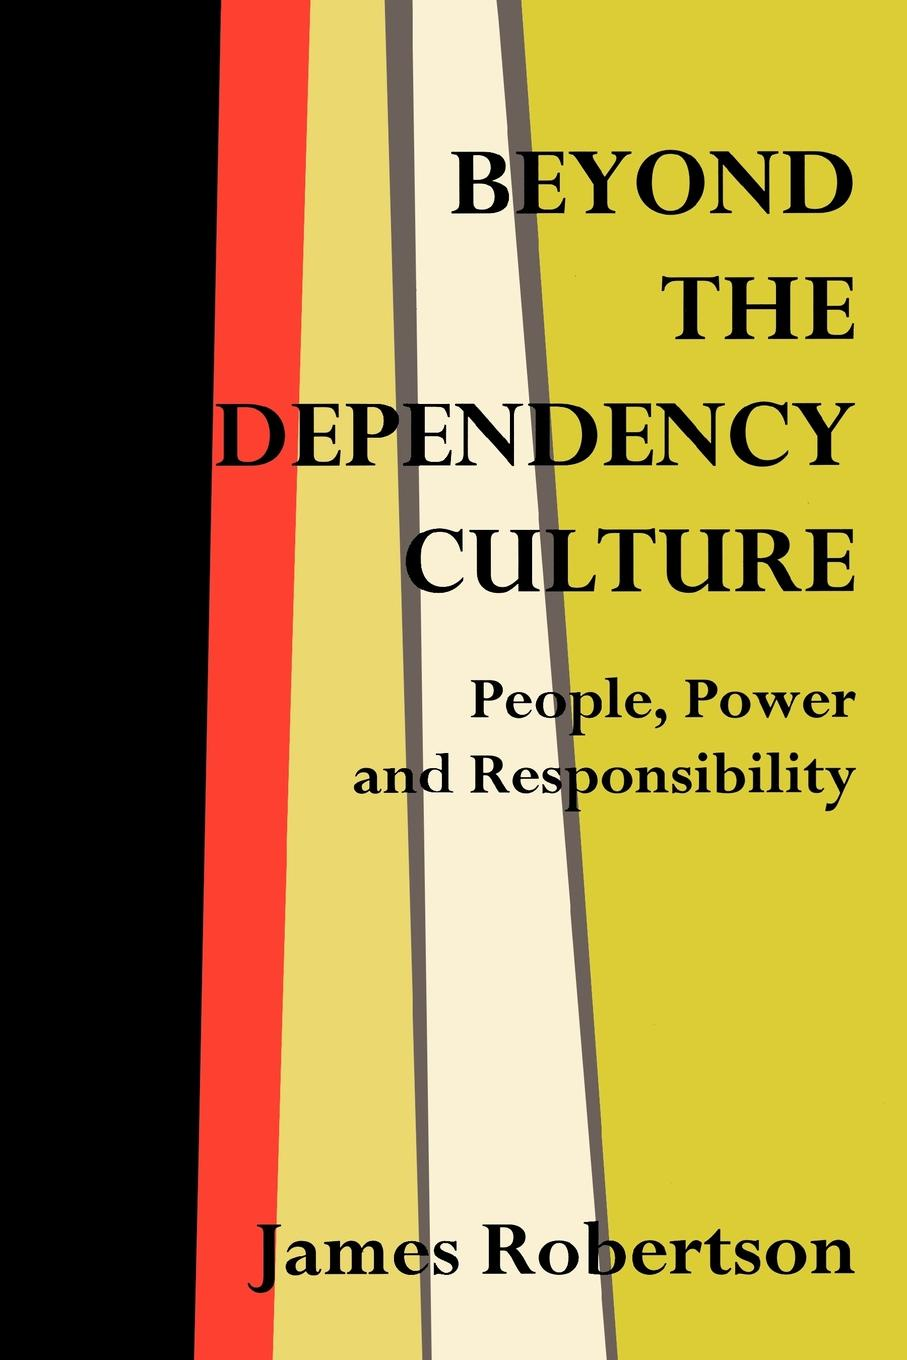 Фото - James Robertson Beyond the Dependency Culture. People, Power and Responsibility in the 21st Century harald welzer climate wars what people will be killed for in the 21st century